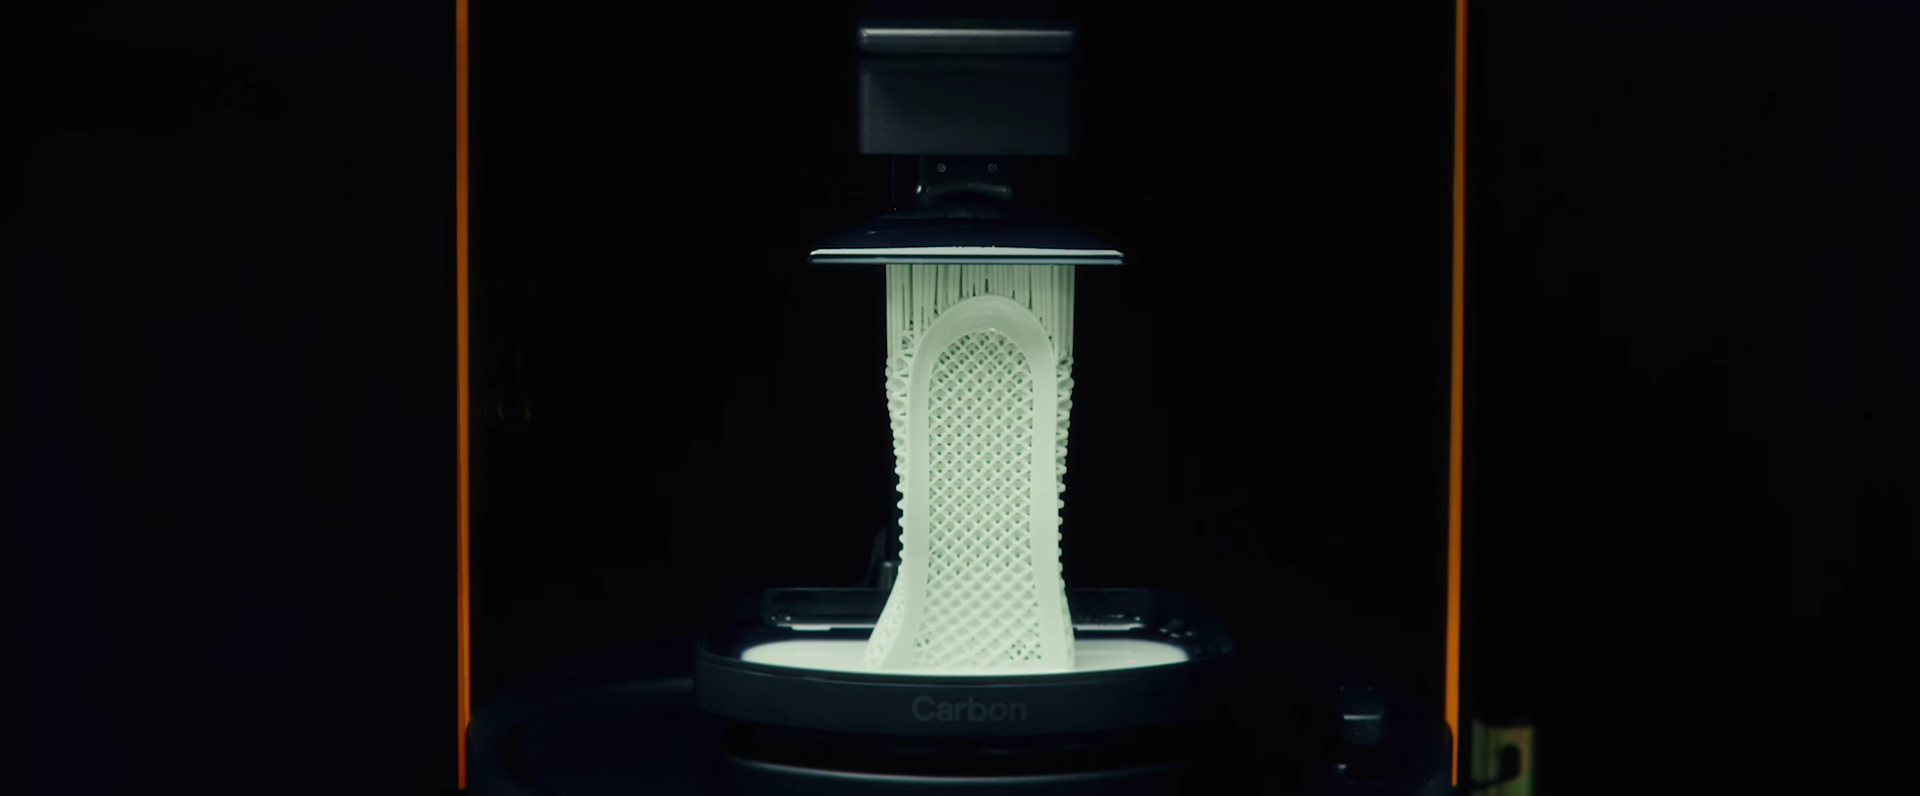 3D Printing is Taking Over the Manufacturing Industry One Shoe at a Time